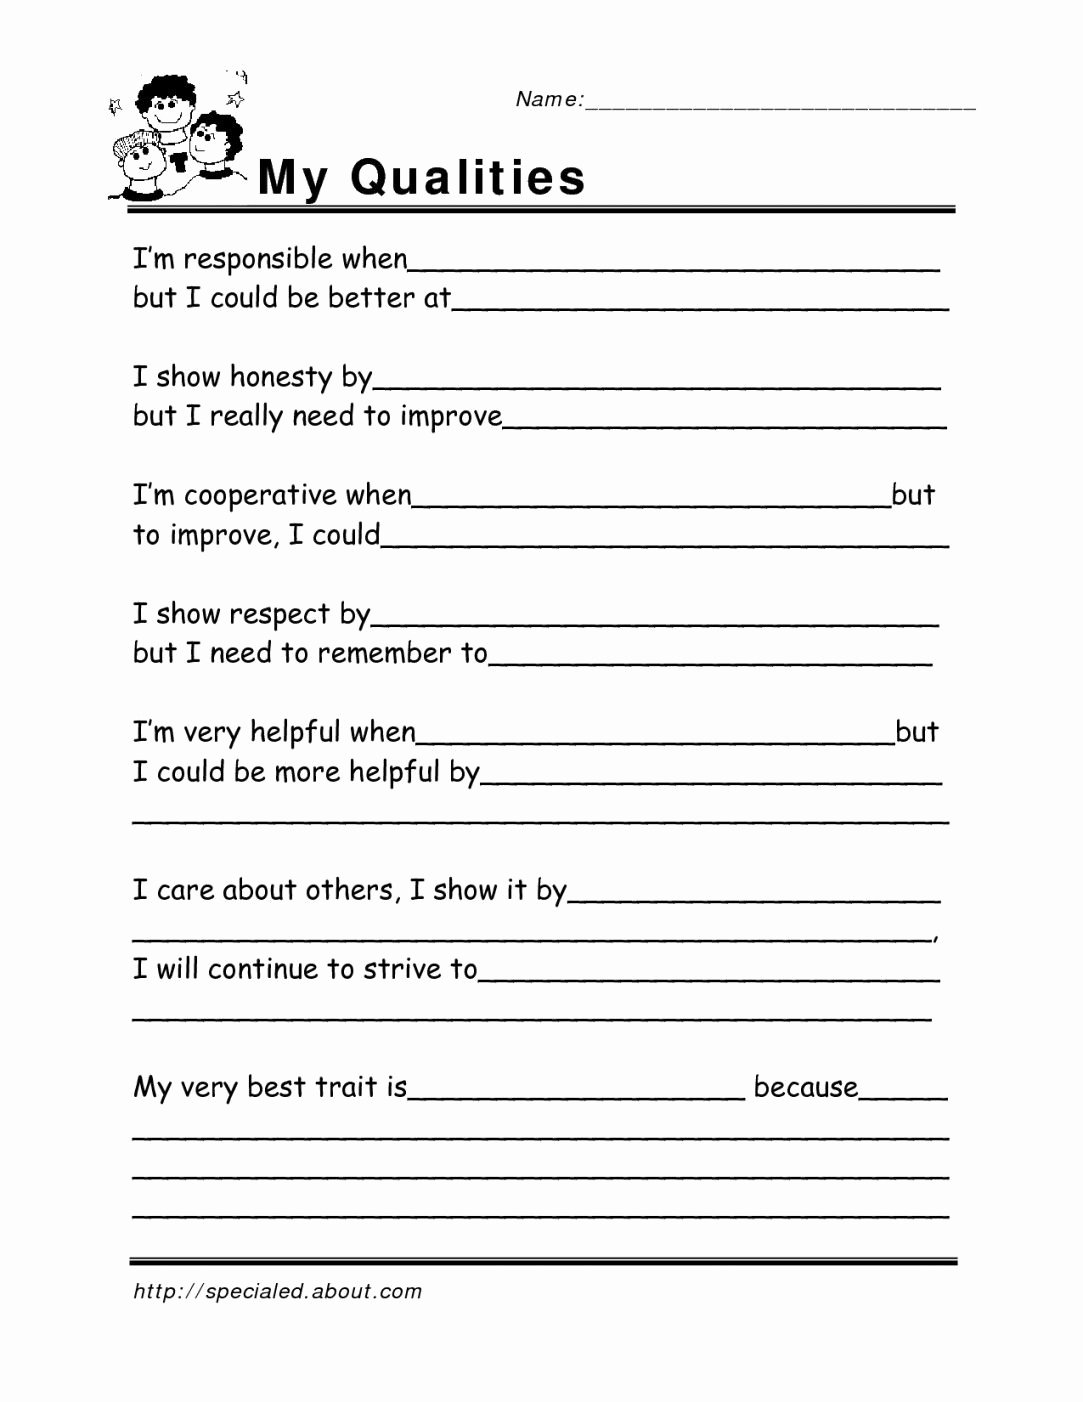 Life Skills for Adults Worksheets Inspirational Life Skills Worksheets for Adults Money